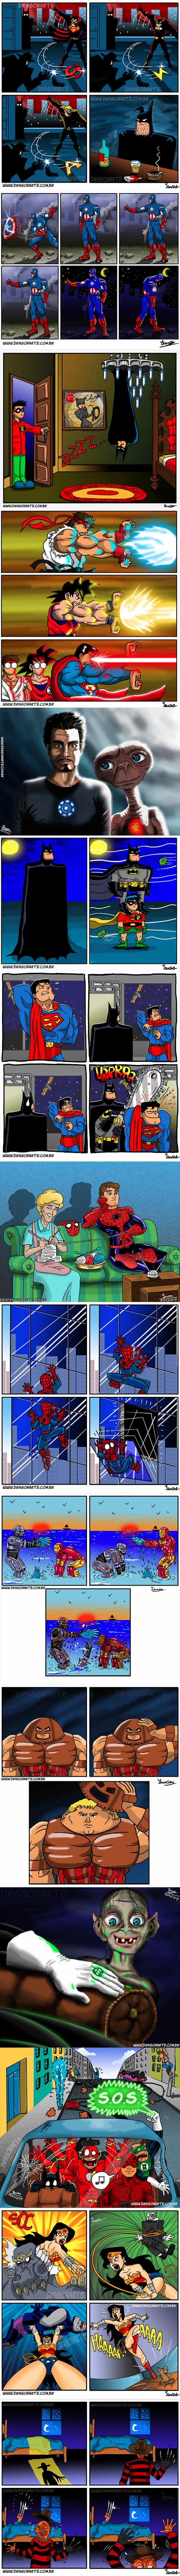 The Funniest Superhero Comics Collection. The last one got a chuckle out of me.